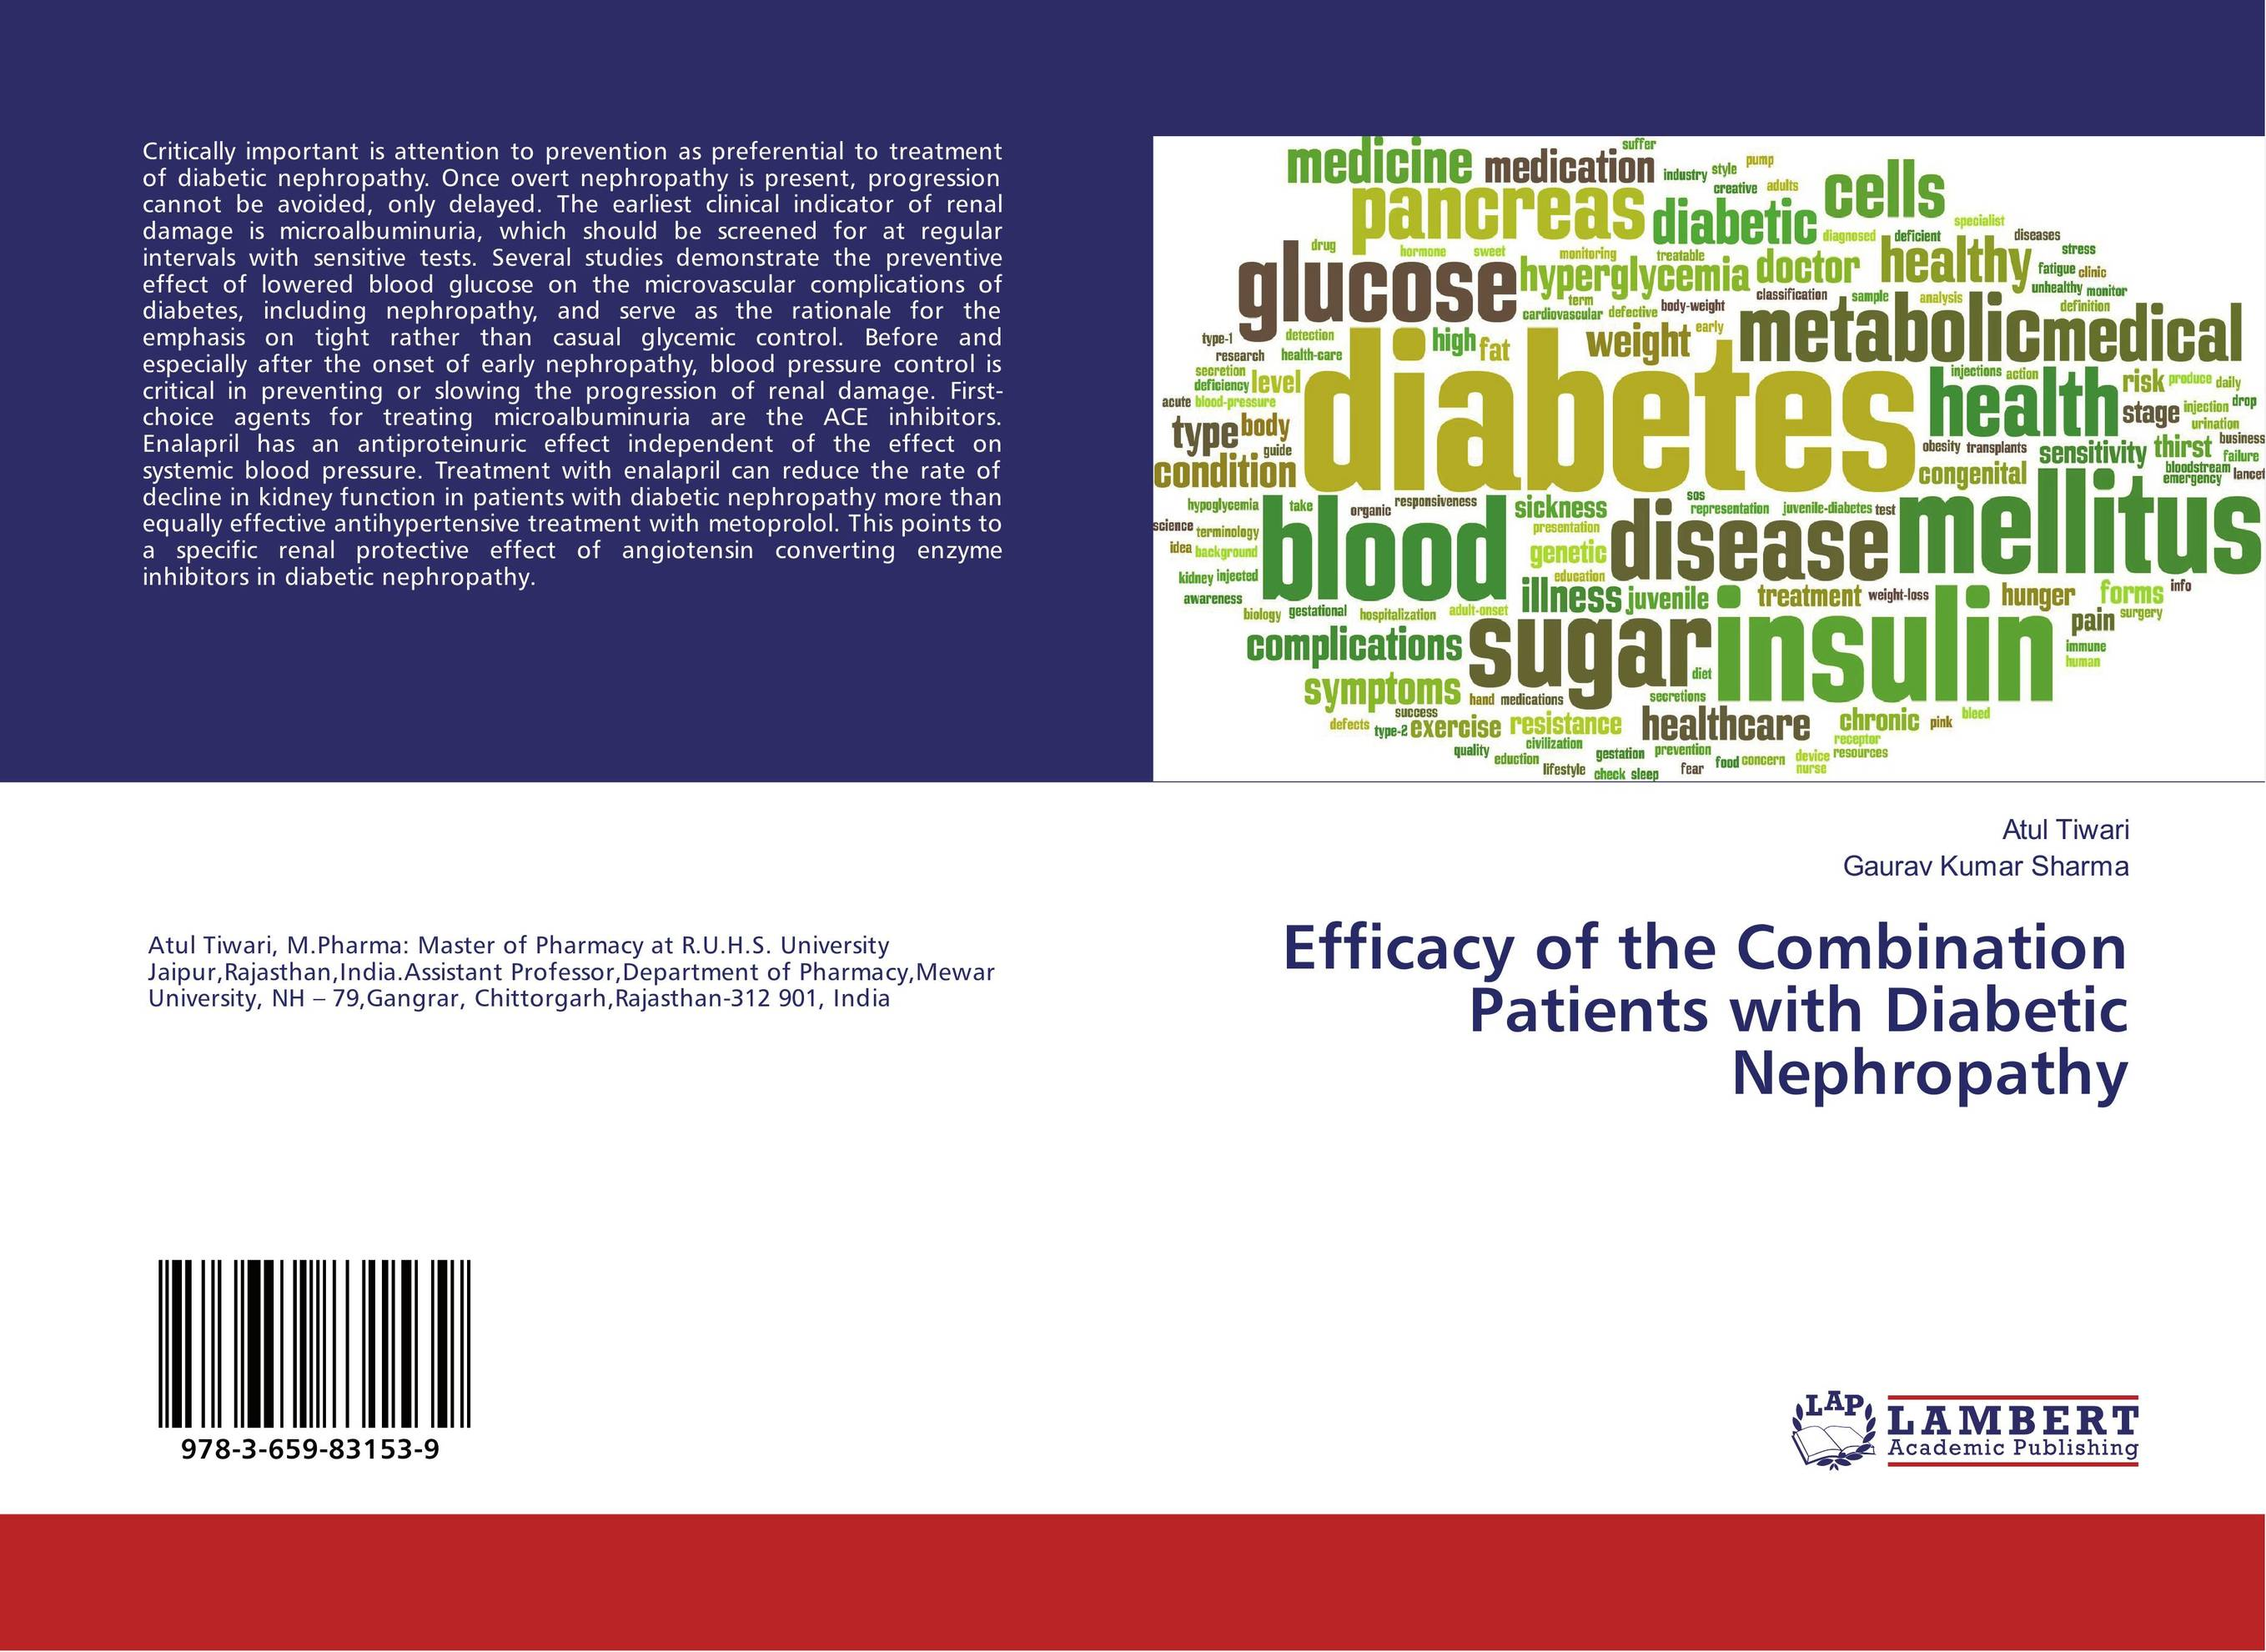 Efficacy of the Combination Patients with Diabetic Nephropathy effect of cyclooxygenase inhibitors on diabetic complications